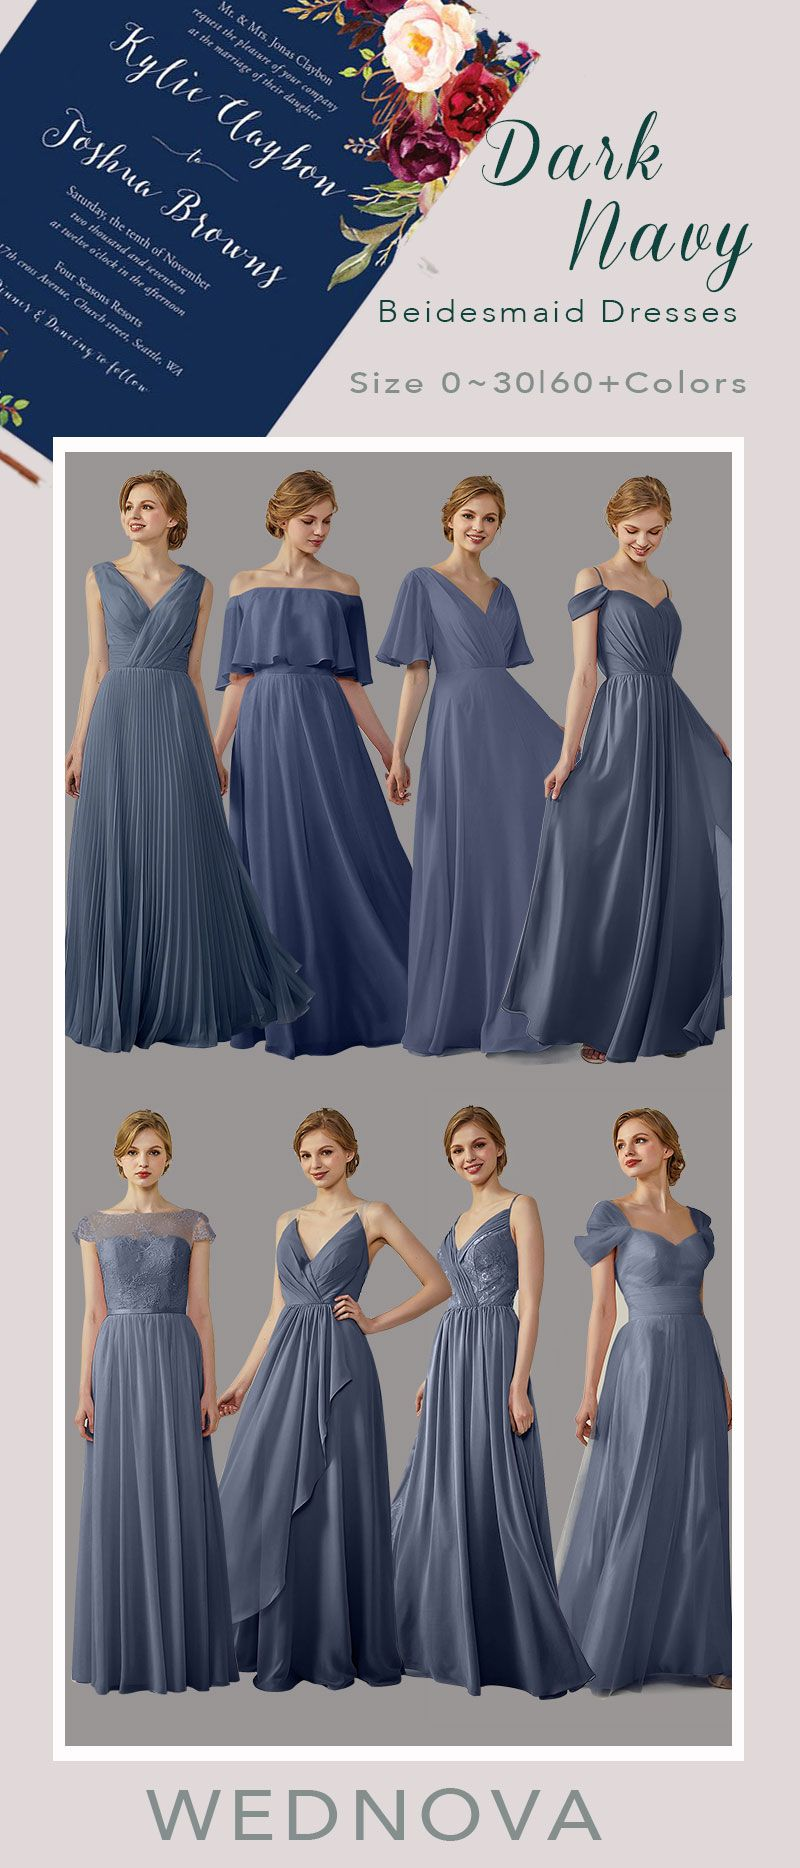 Dark navy bridesmaid dresses cold the shoulder dress long with tulle